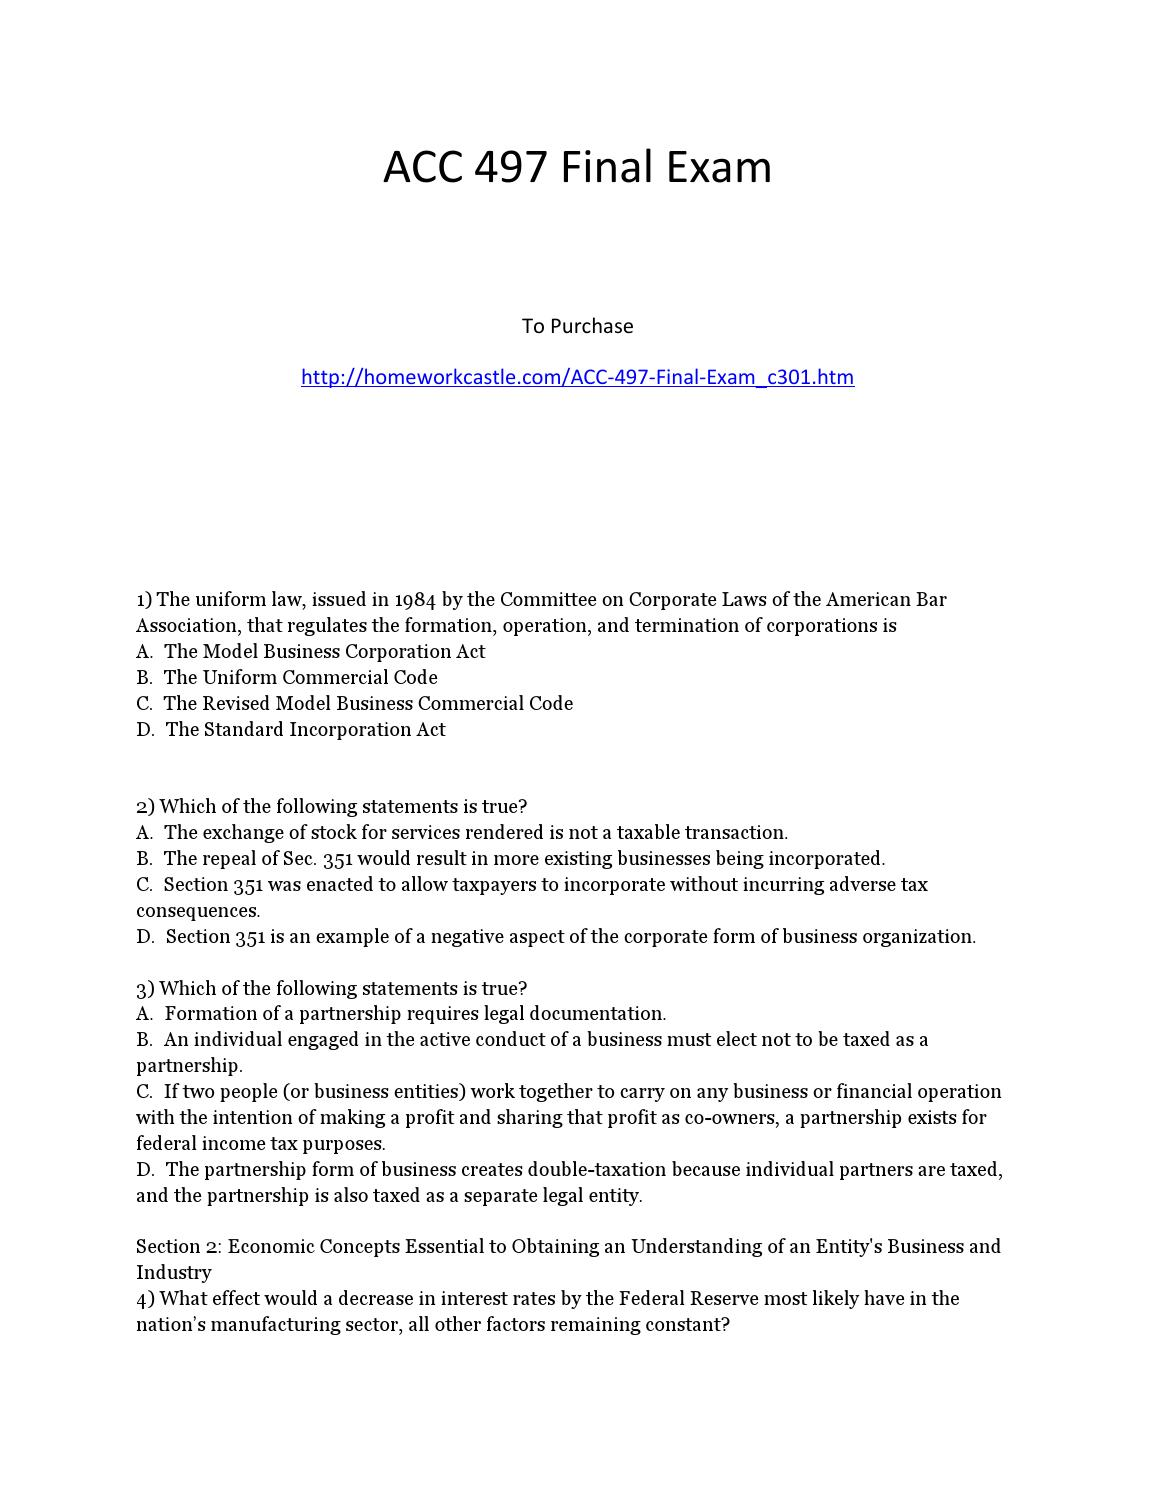 acc 497 final exam acc 497 final exam copy this link to your browser and download 1) the uniform law, issued in 1984 by the committee on corporate laws of the american bar association, that regulates the formation, operation, and termination of corporations is.